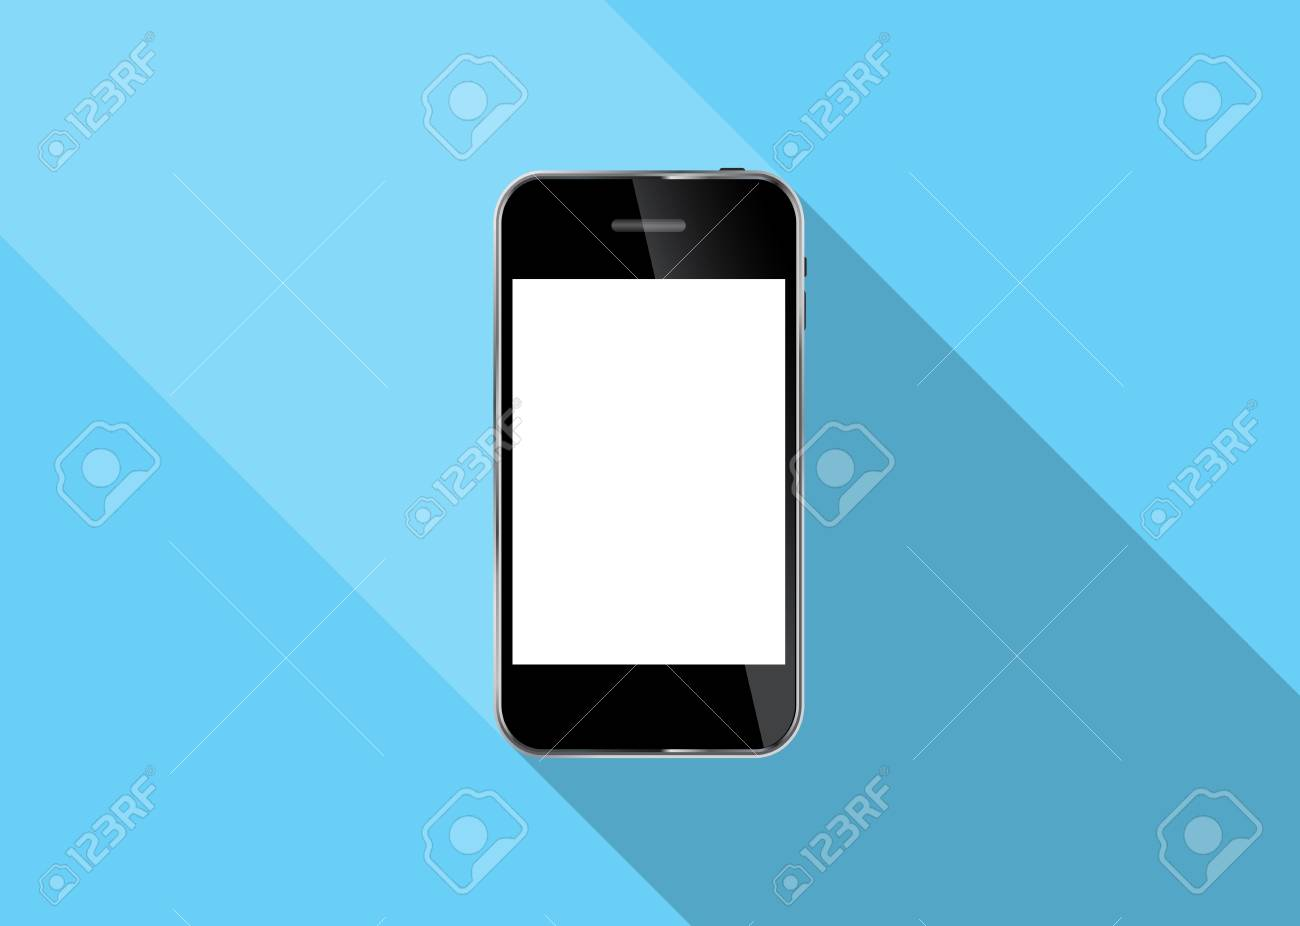 Abstract Design Realistic Mobile Phone Illustration Stock Vector - 26338377